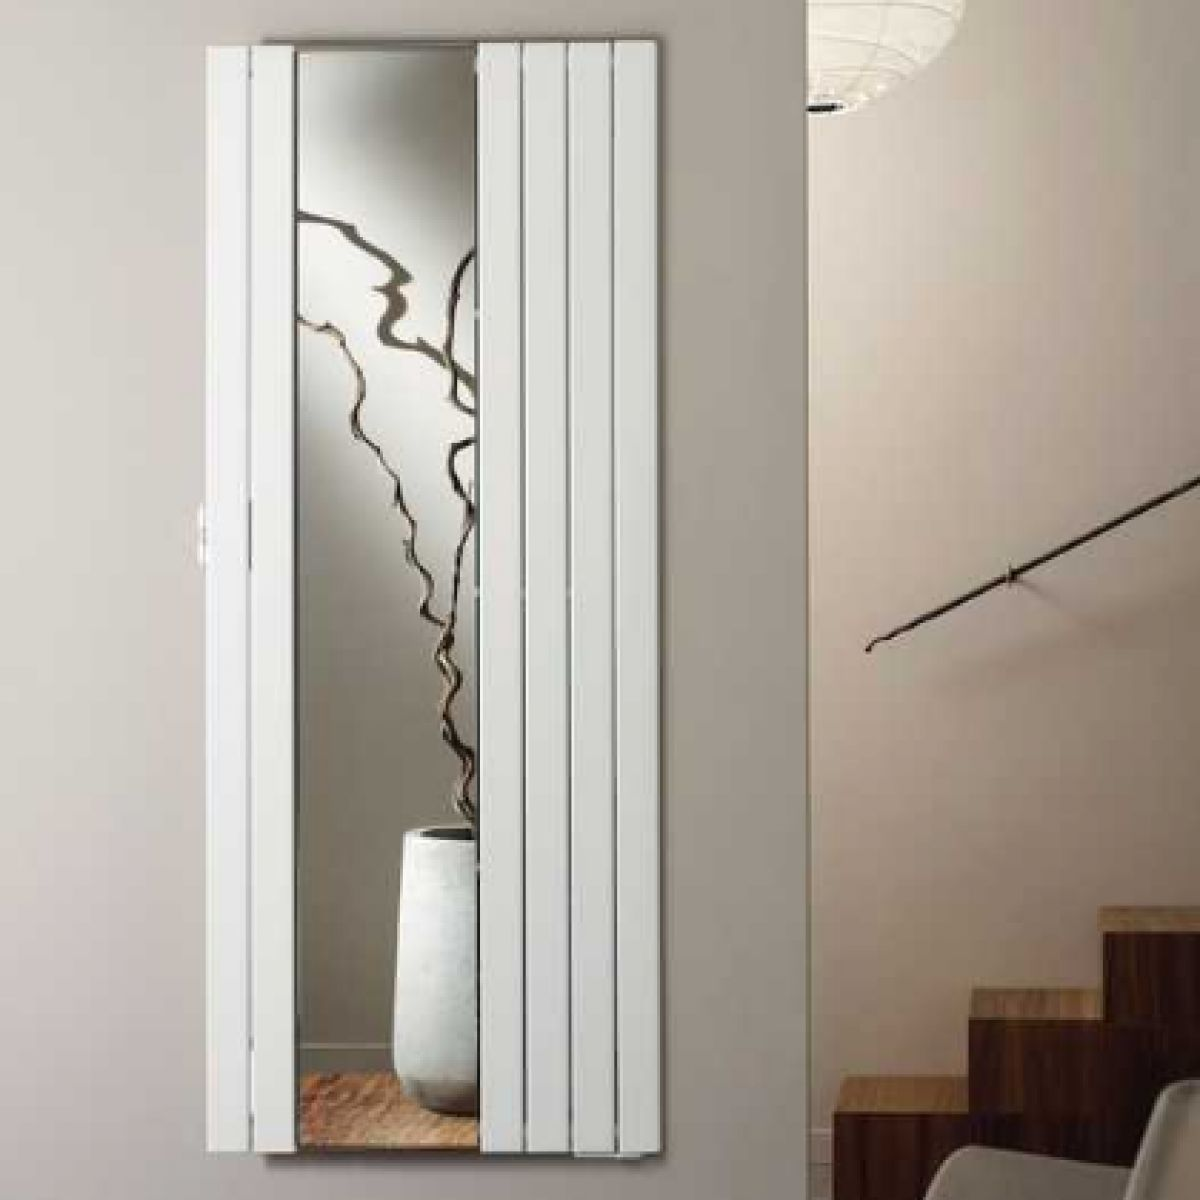 Hsk Softcube Mirror Radiators Zehnder Roda Mirror Designer Radiator 1800mm X